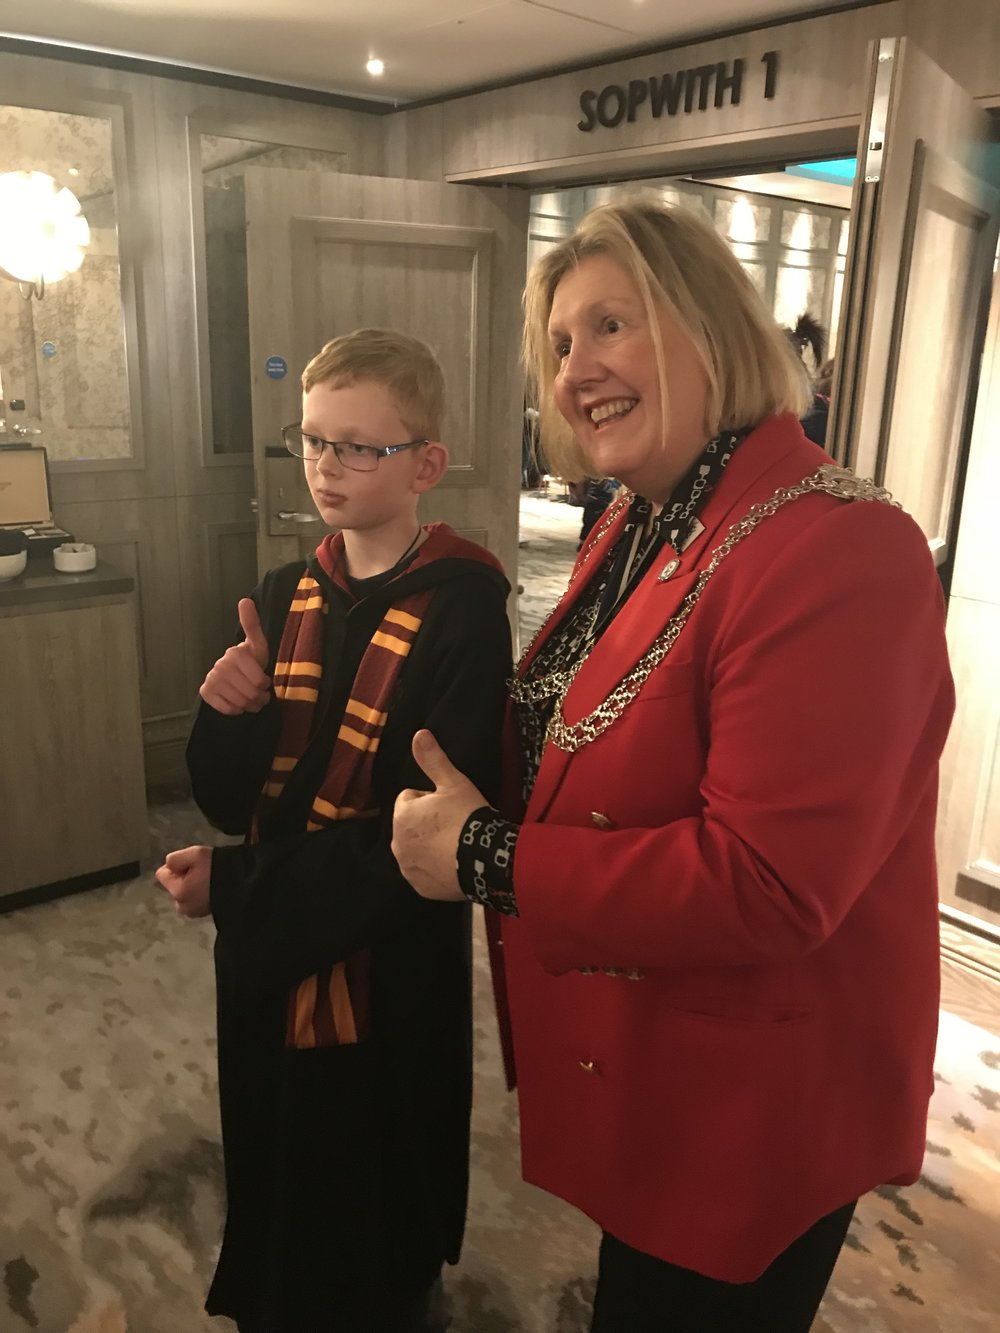 photo opportunity with a griffindor pupil